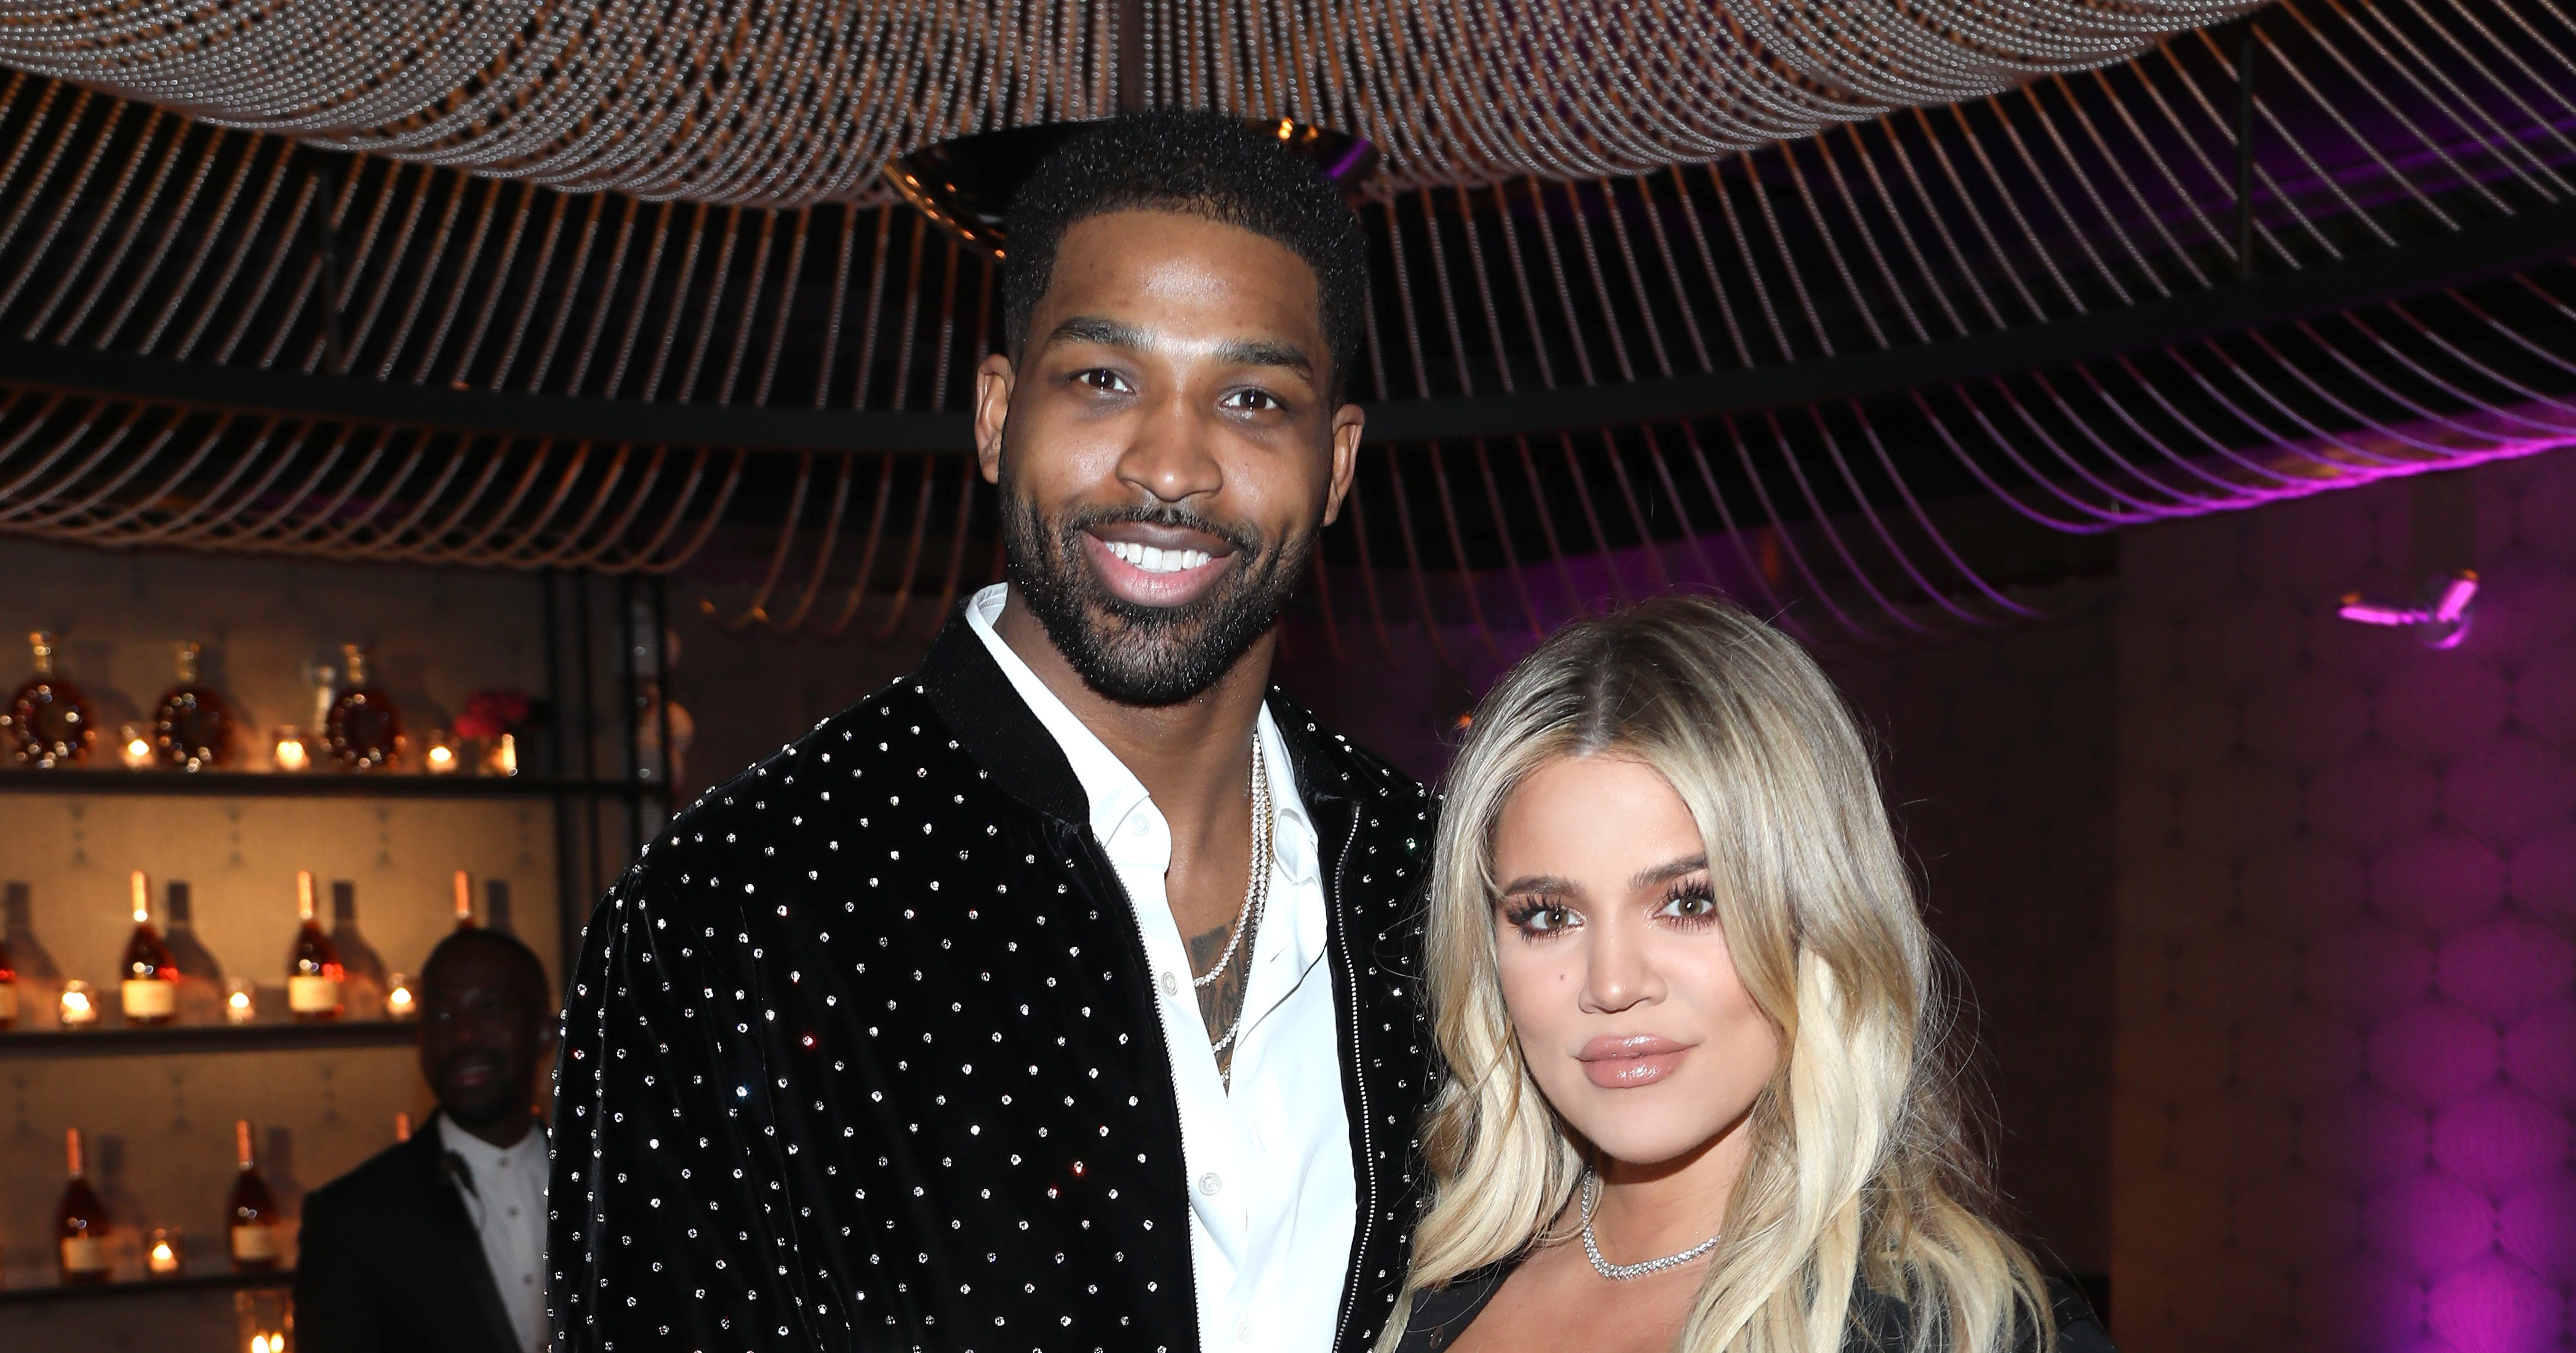 Keeping Up With The Kardashian's Finale Part One Shows The Jordyn-Tristan Scandal In Real Time